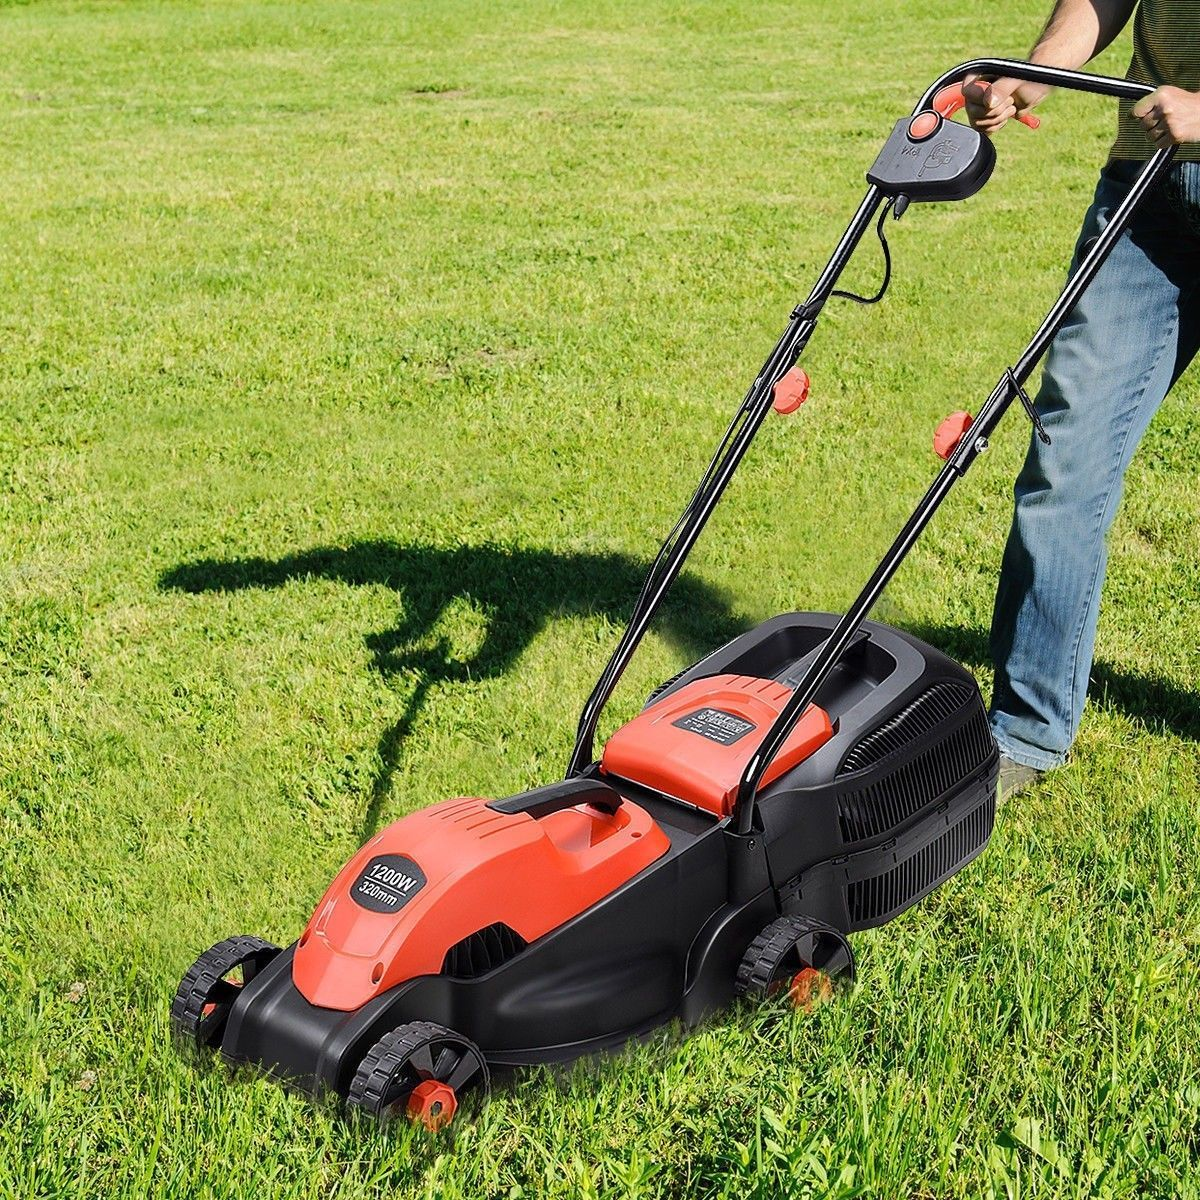 10 Best Corded Electric Lawn Mower Buying In 2020 Push Lawn Mower Lawn Mower Electric Mower